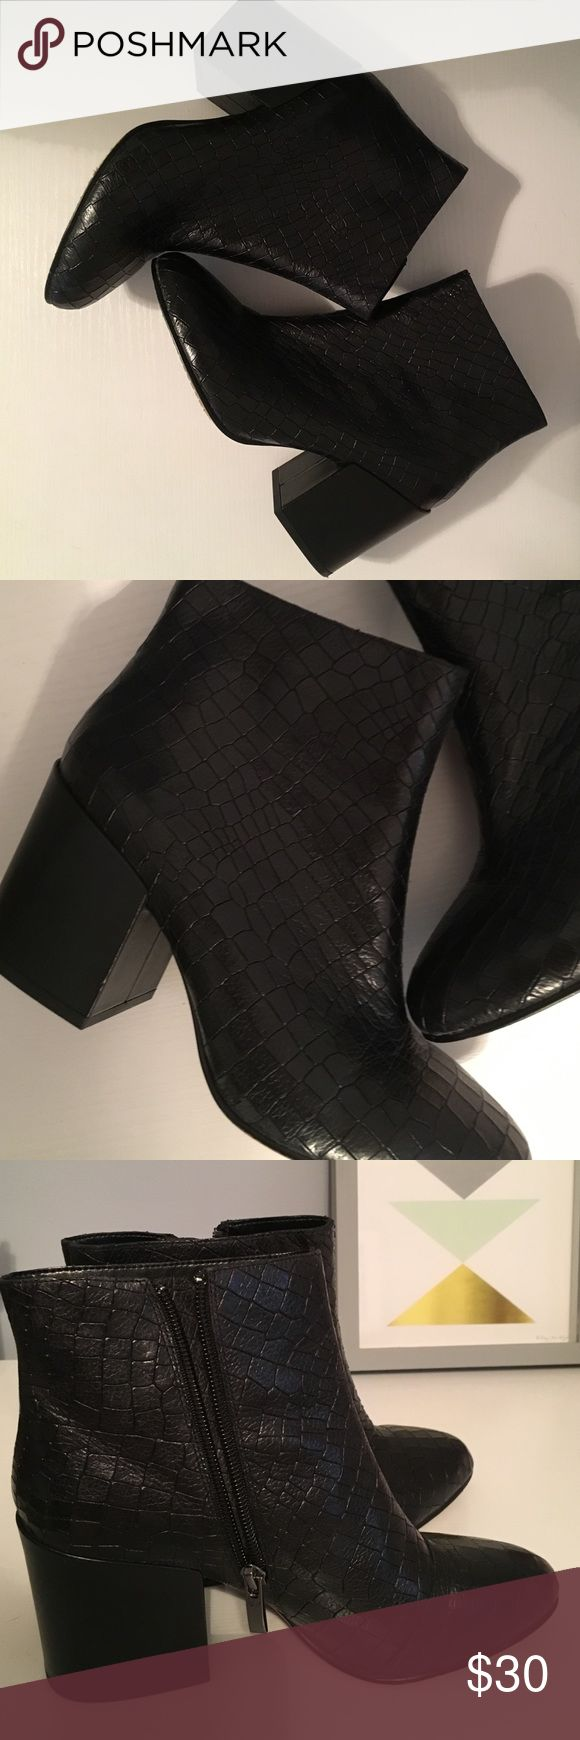 French Connection stacked heel black textured boot Gently used French Connection stacked heel ankle boots black size 37 (7) French Connection Shoes Heeled Boots